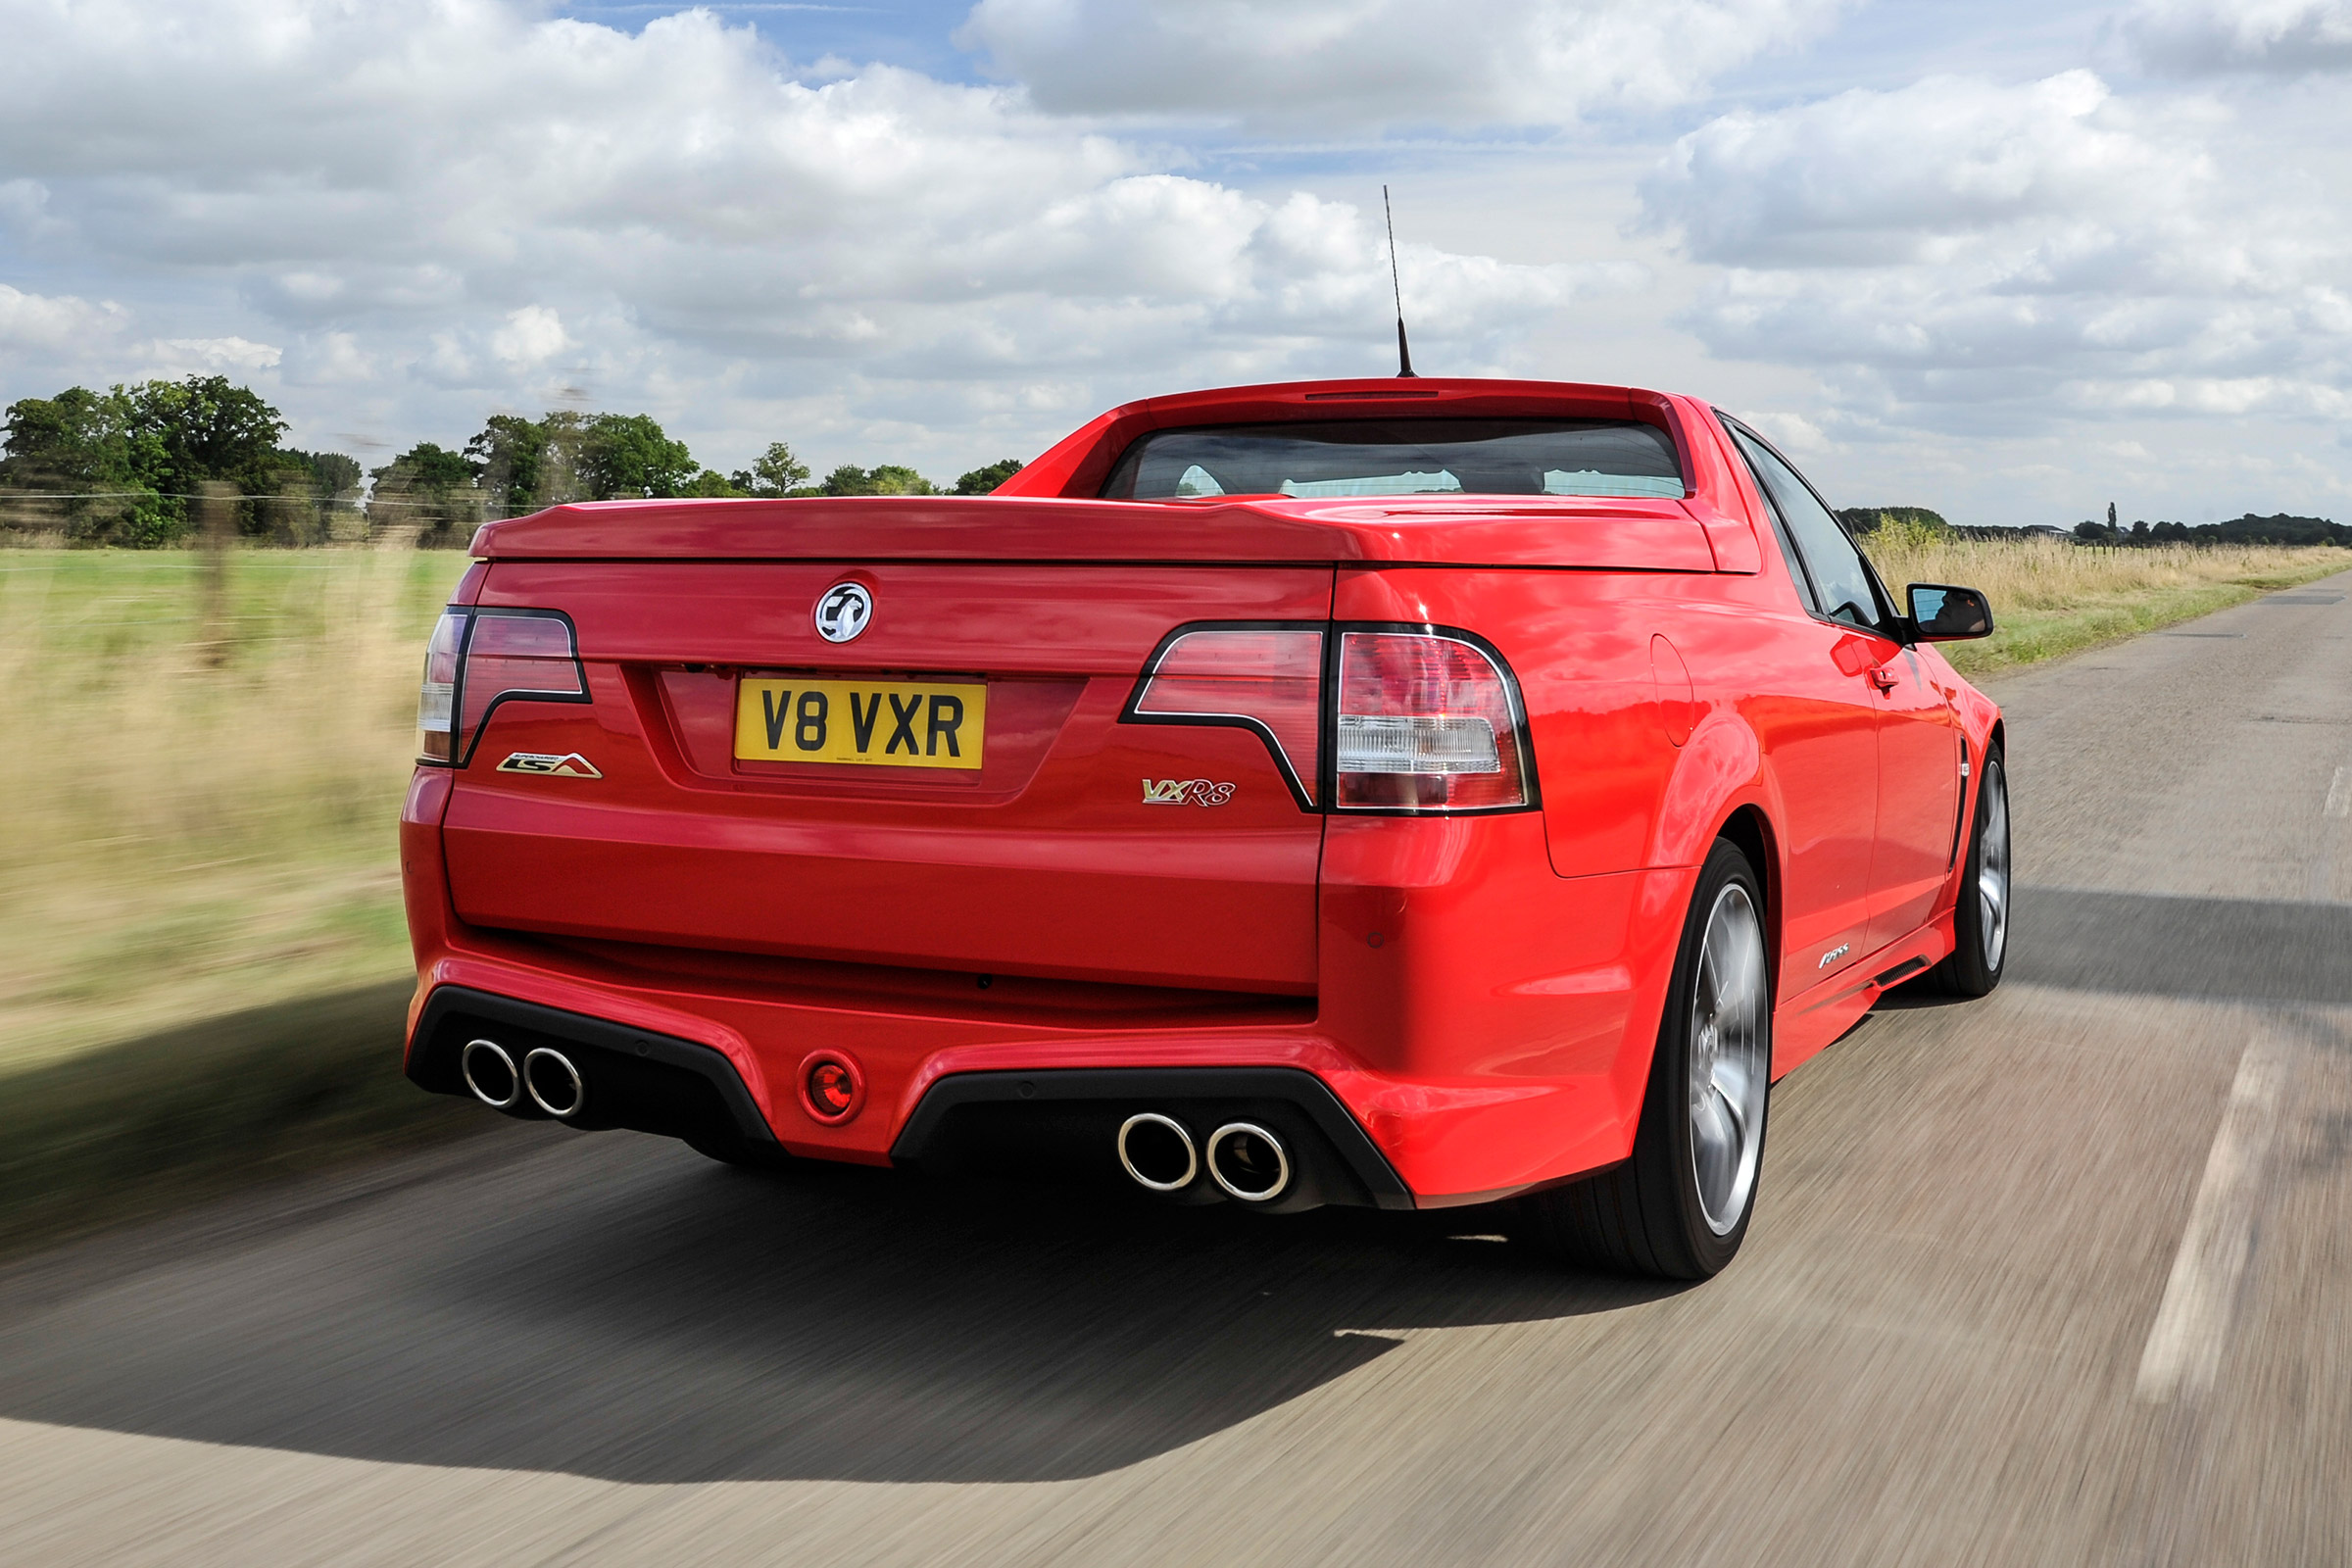 2017 Vauxhall VXR8 Maloo Test Drive Rear View (Photo 24 of 26)